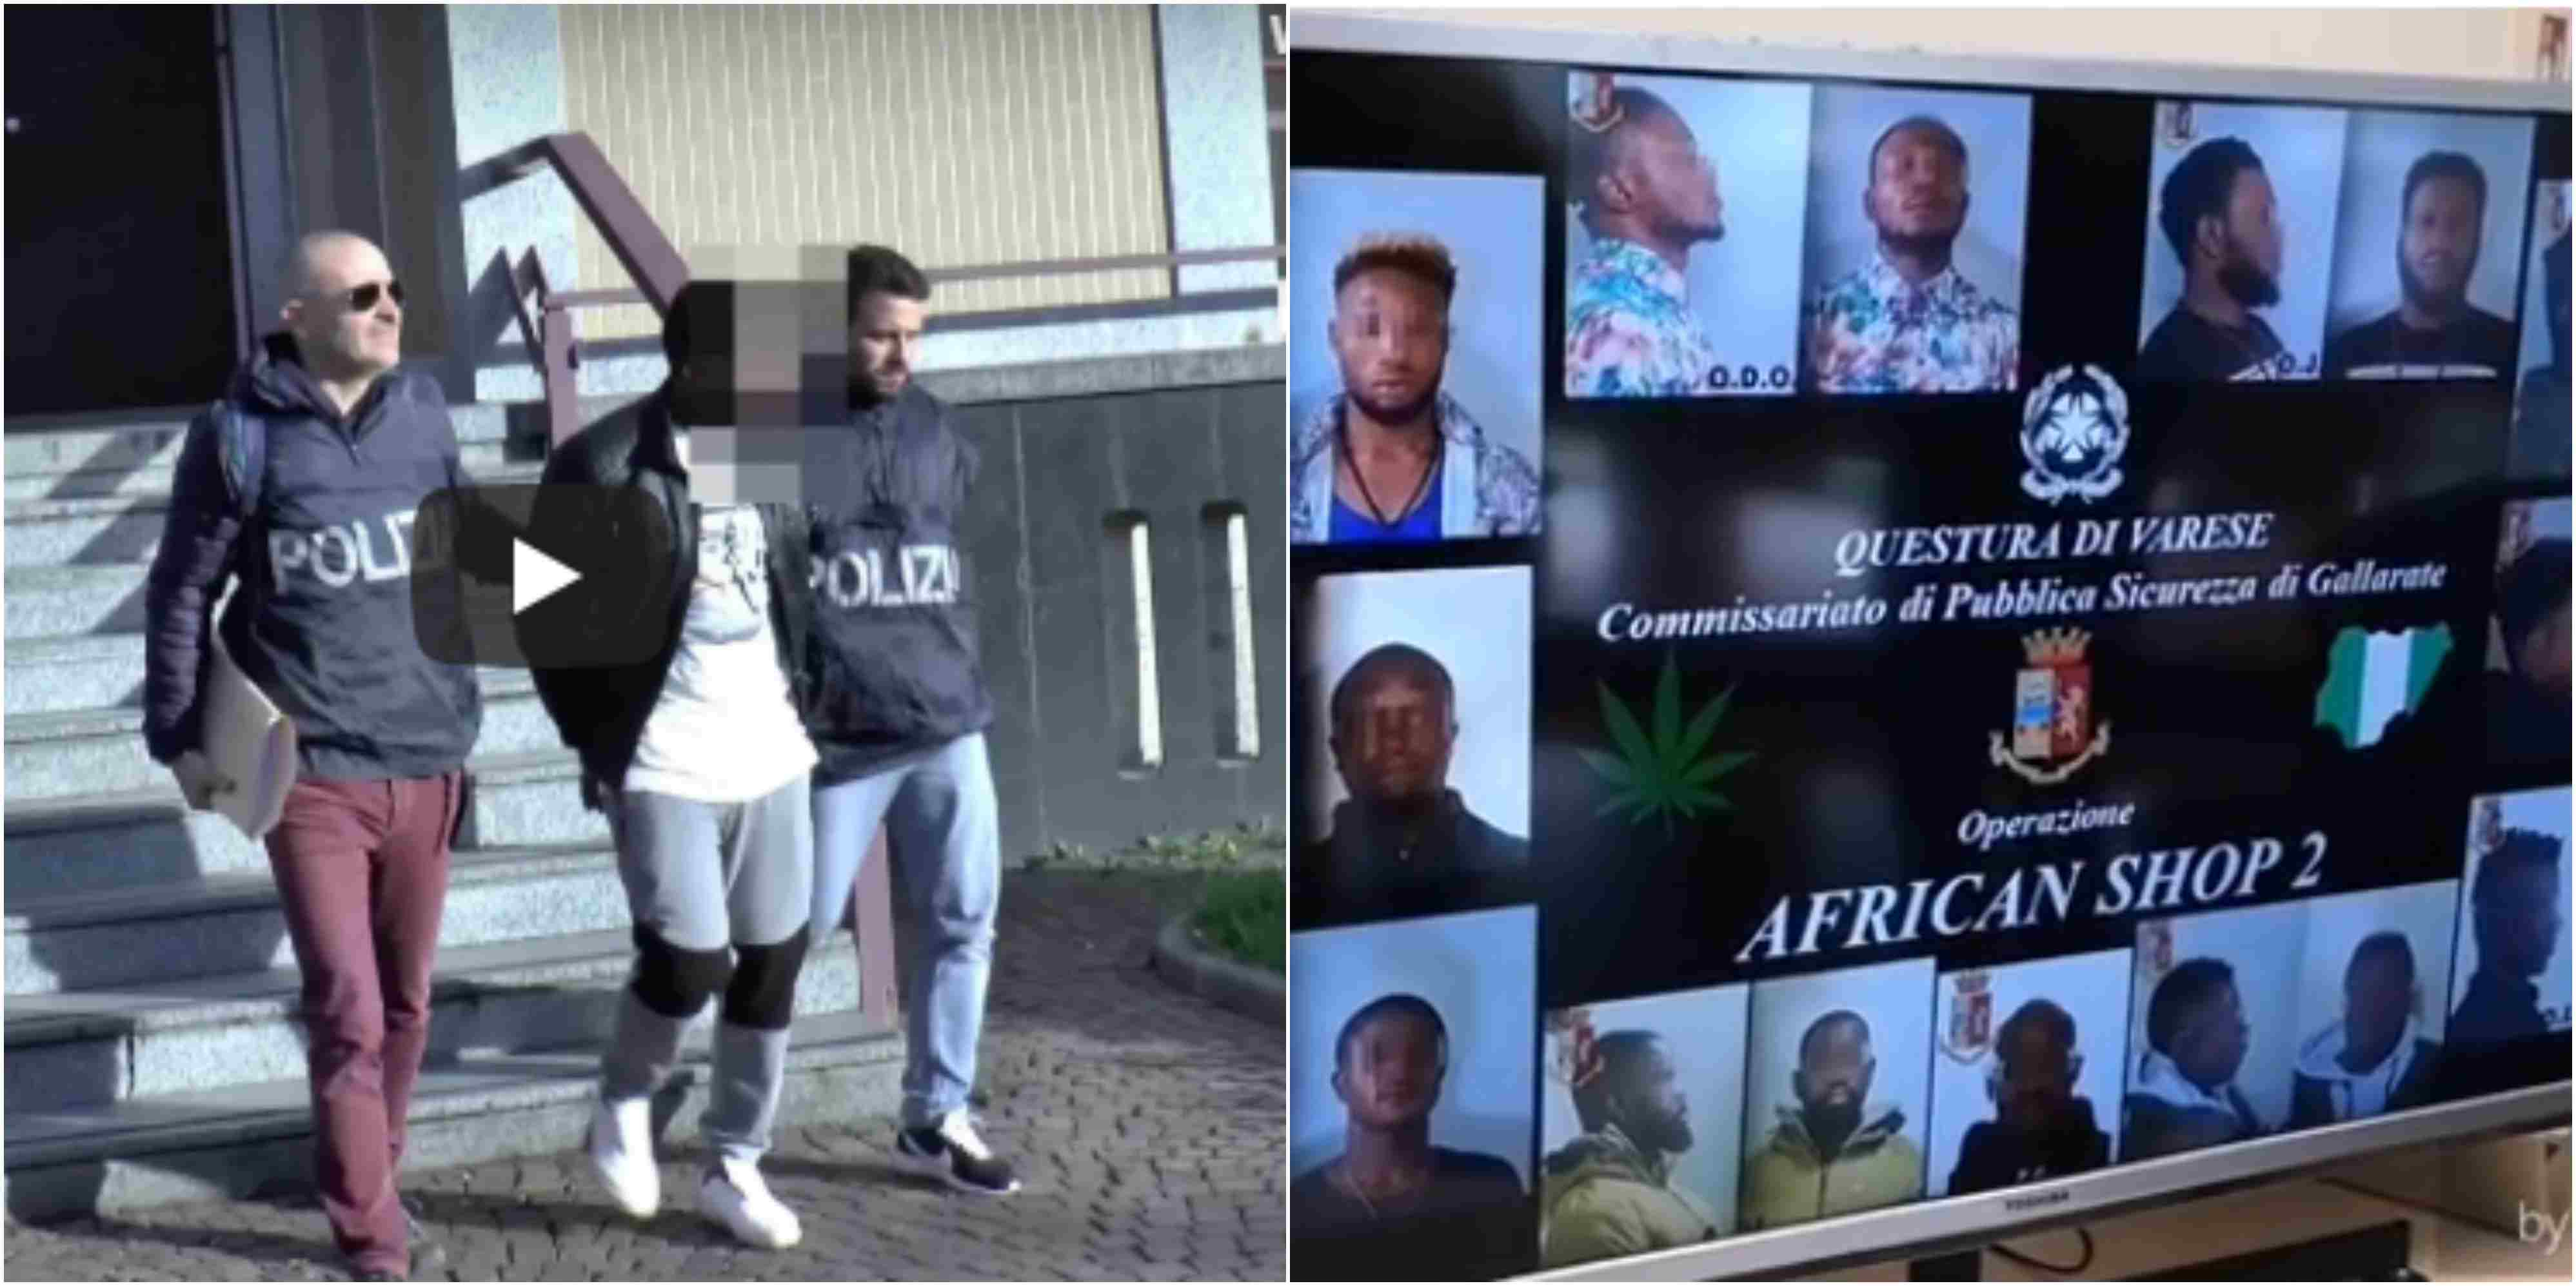 10 Nigerian drug dealers in Italy arrested by Police